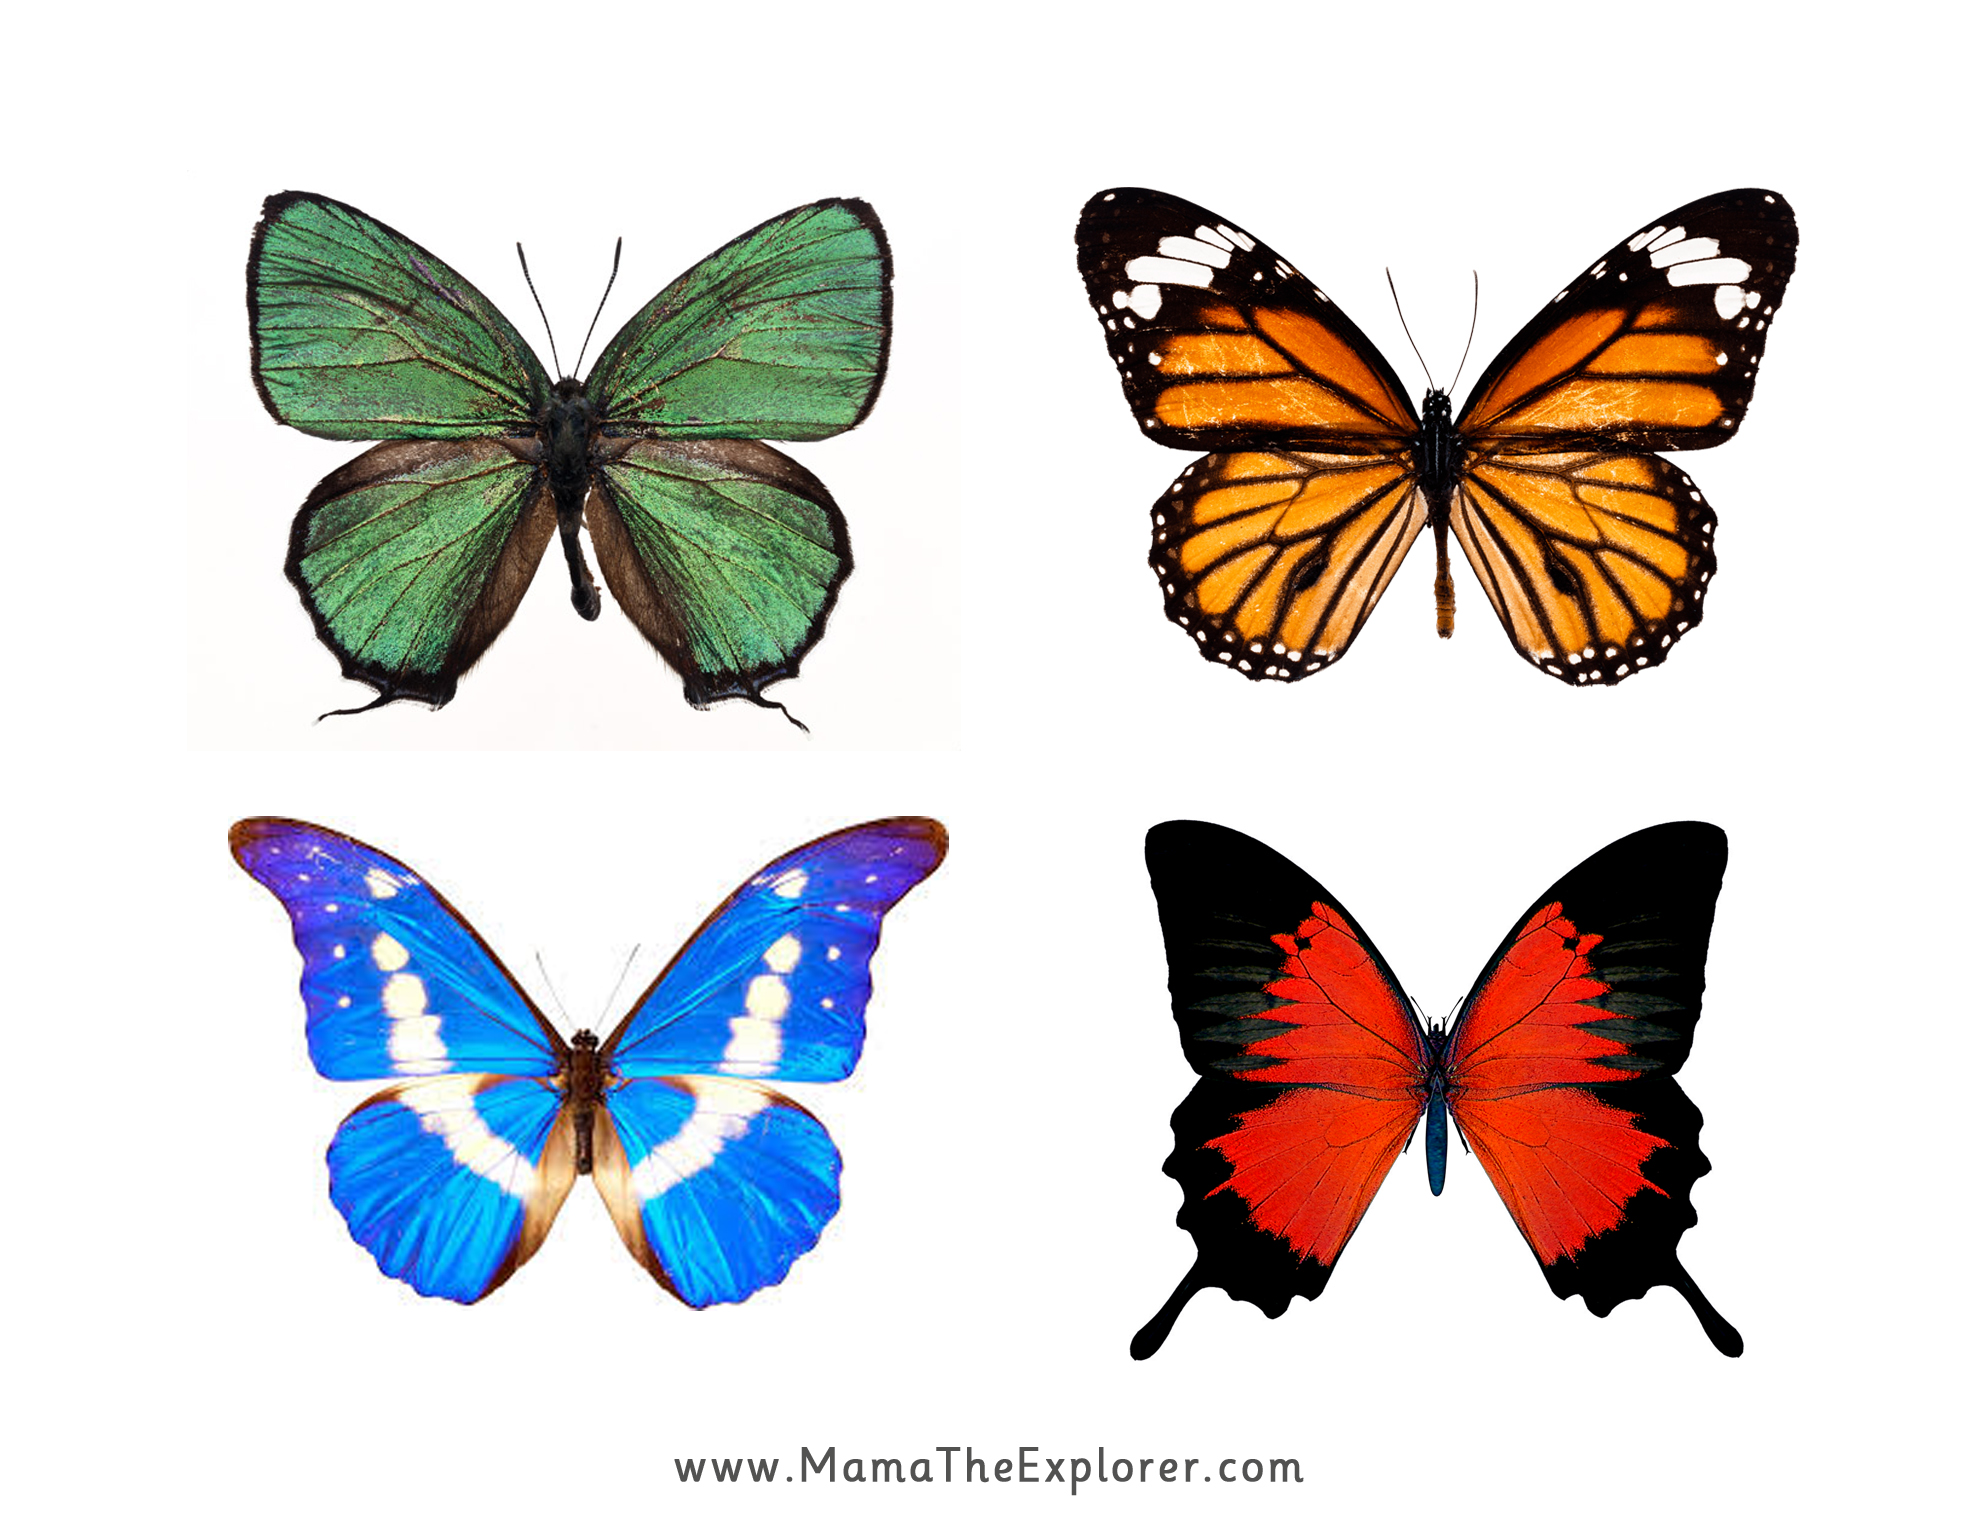 graphic regarding Butterfly Printable identified as PRINTABLE: BUTTERFLY MATCHING Hard work Mama The Explorer